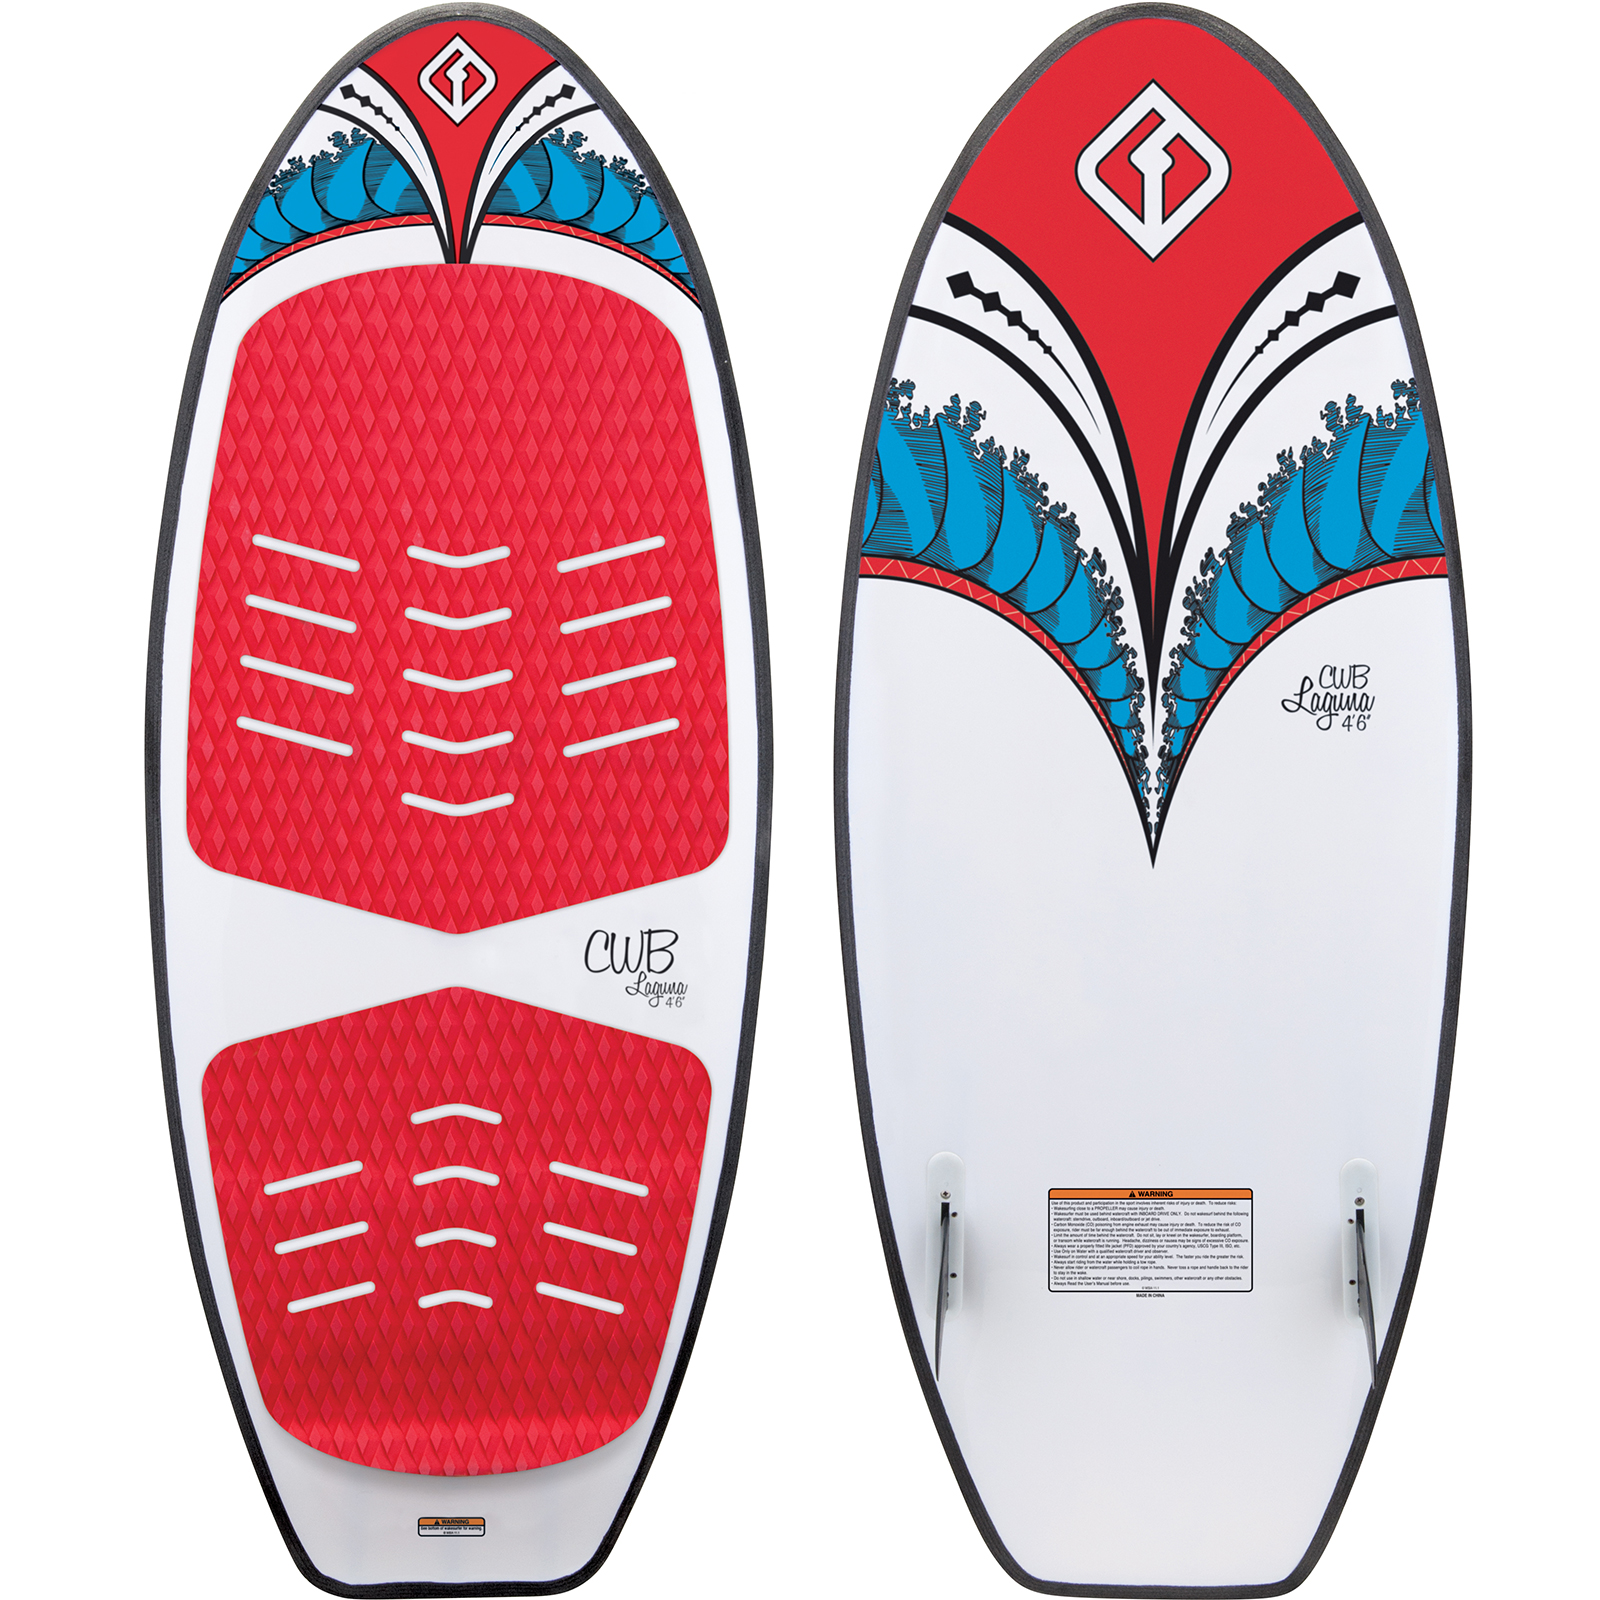 LAGUNA 4.6 WAKESURFER CONNELLY 2018